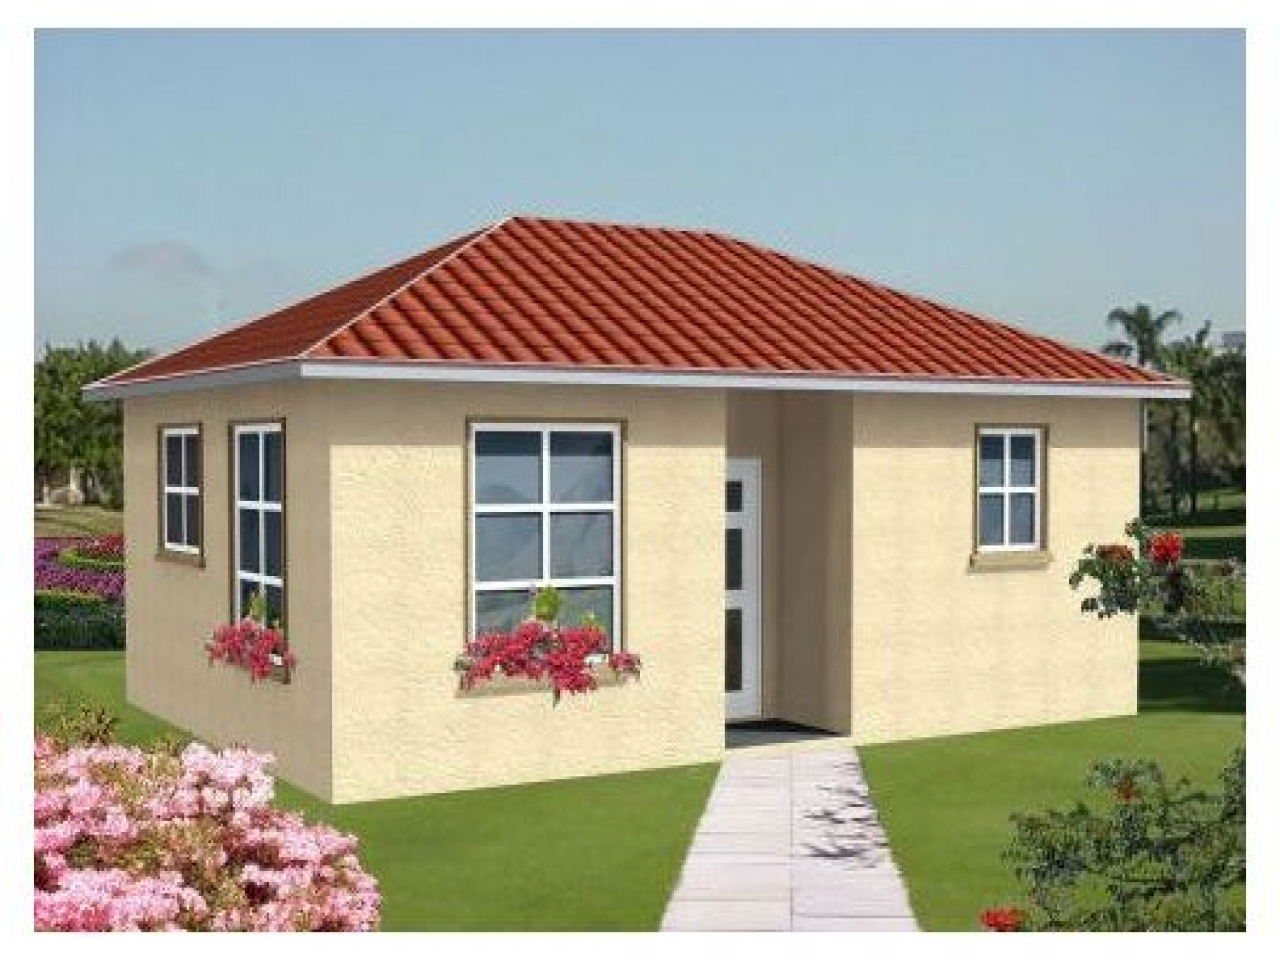 One bedroom home plans one bedroom cottage home plans small one bedroom house plans - One bedroom house design ...